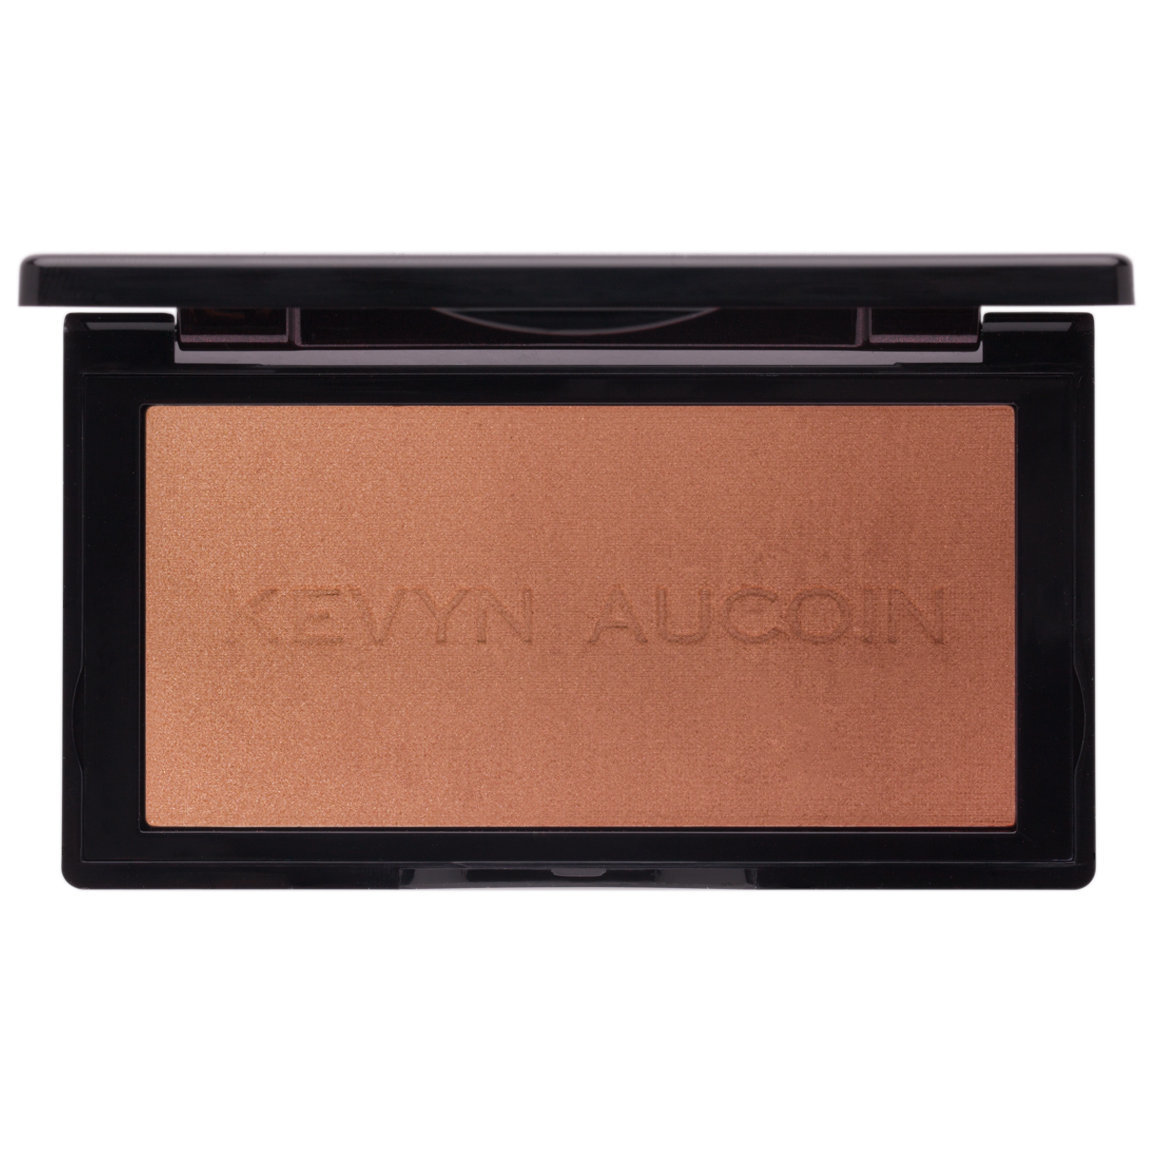 Kevyn Aucoin The Neo-Bronzer Dusk Medium product smear.